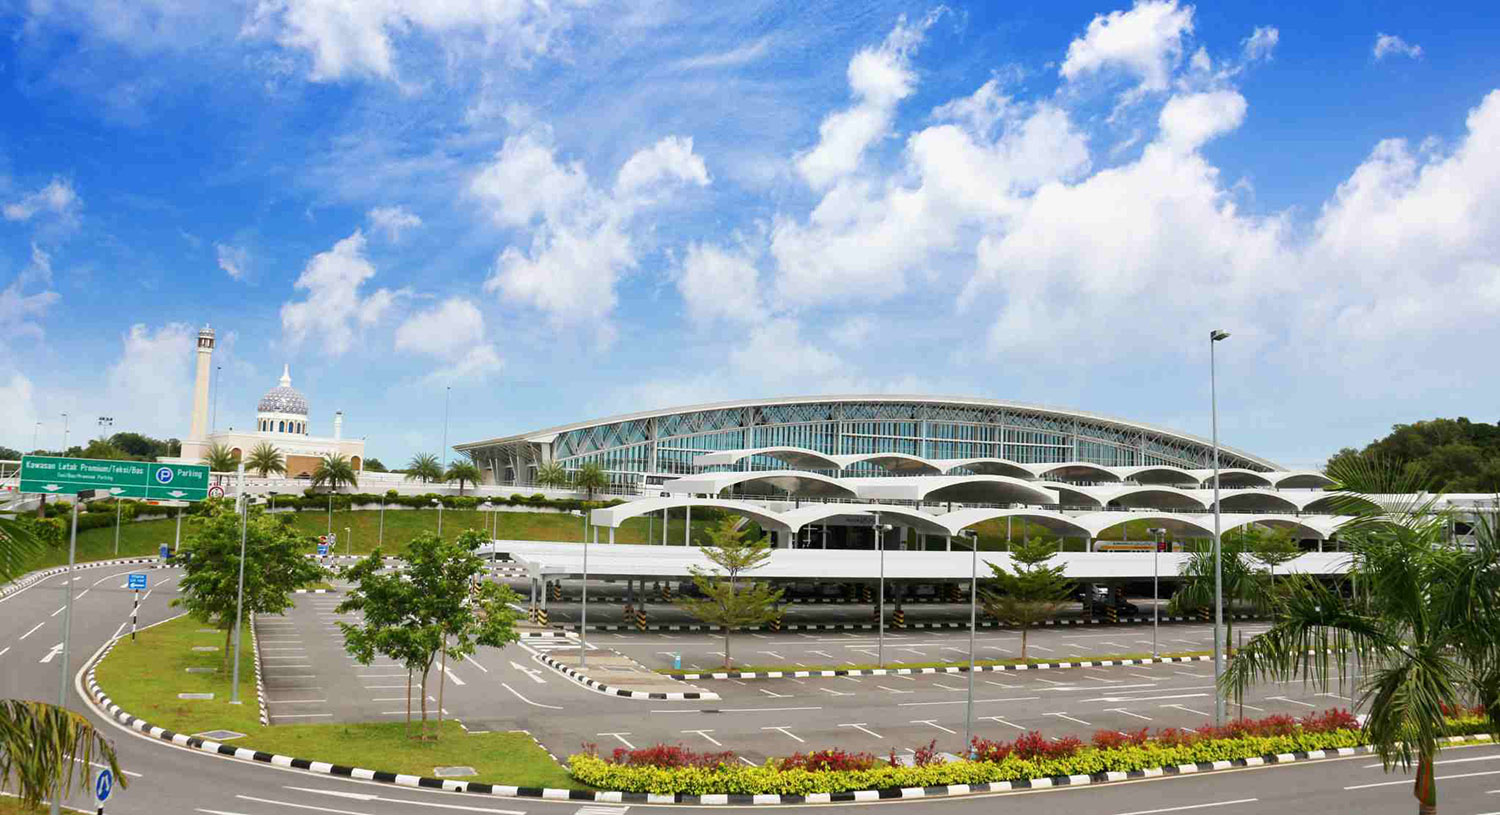 Brunei International Airport, Brunei